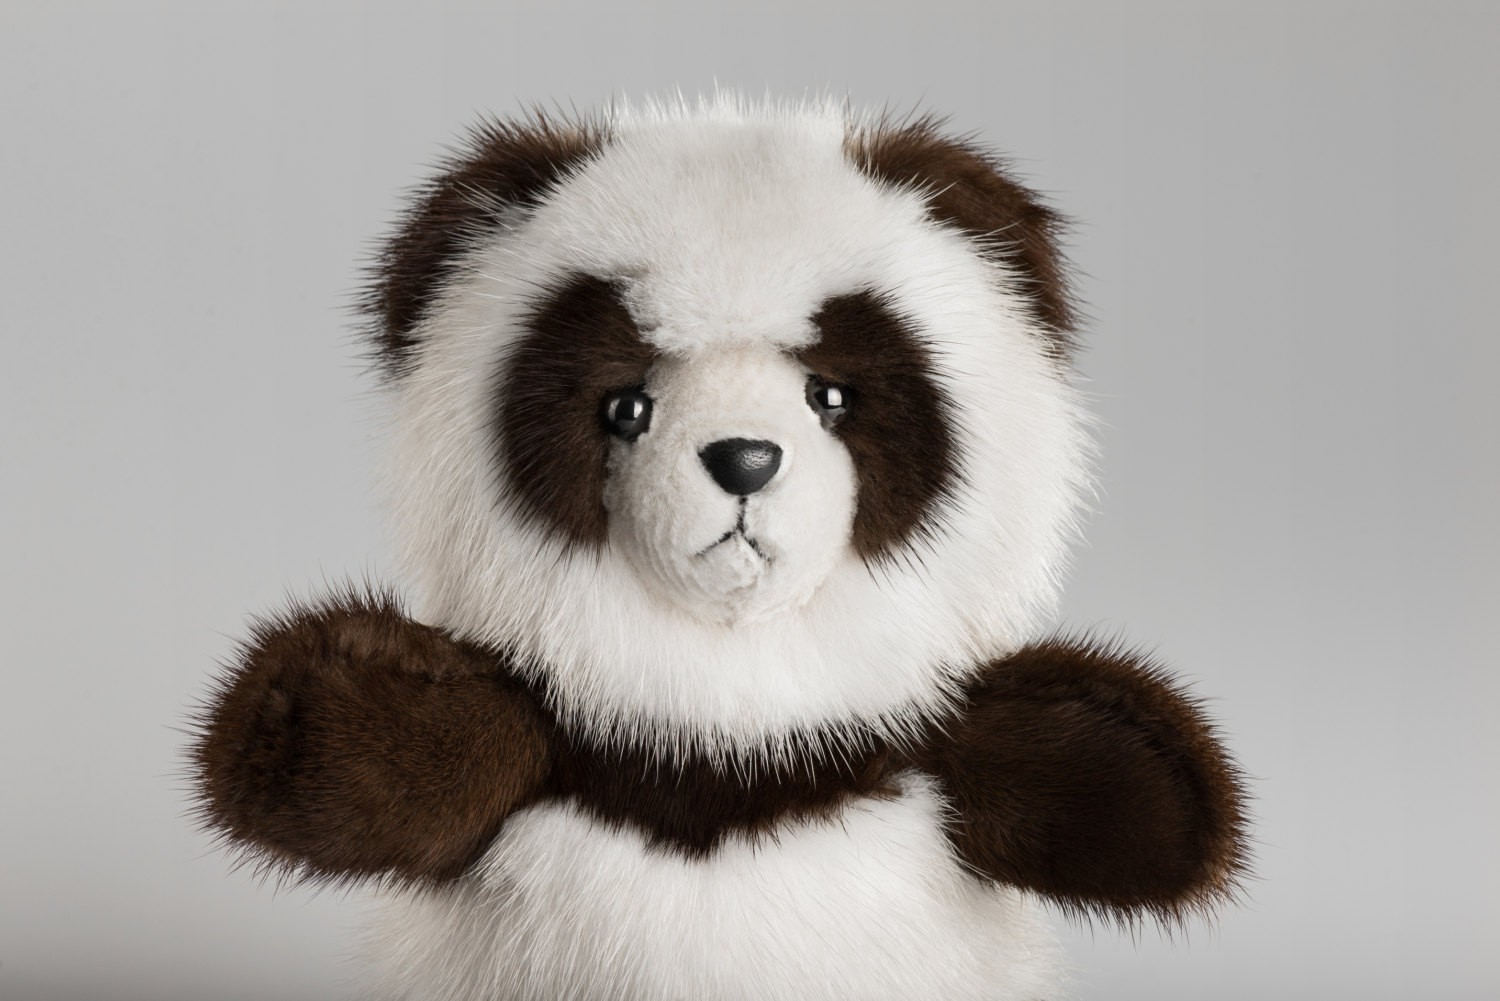 Buy Real Mink Panda Brown and White